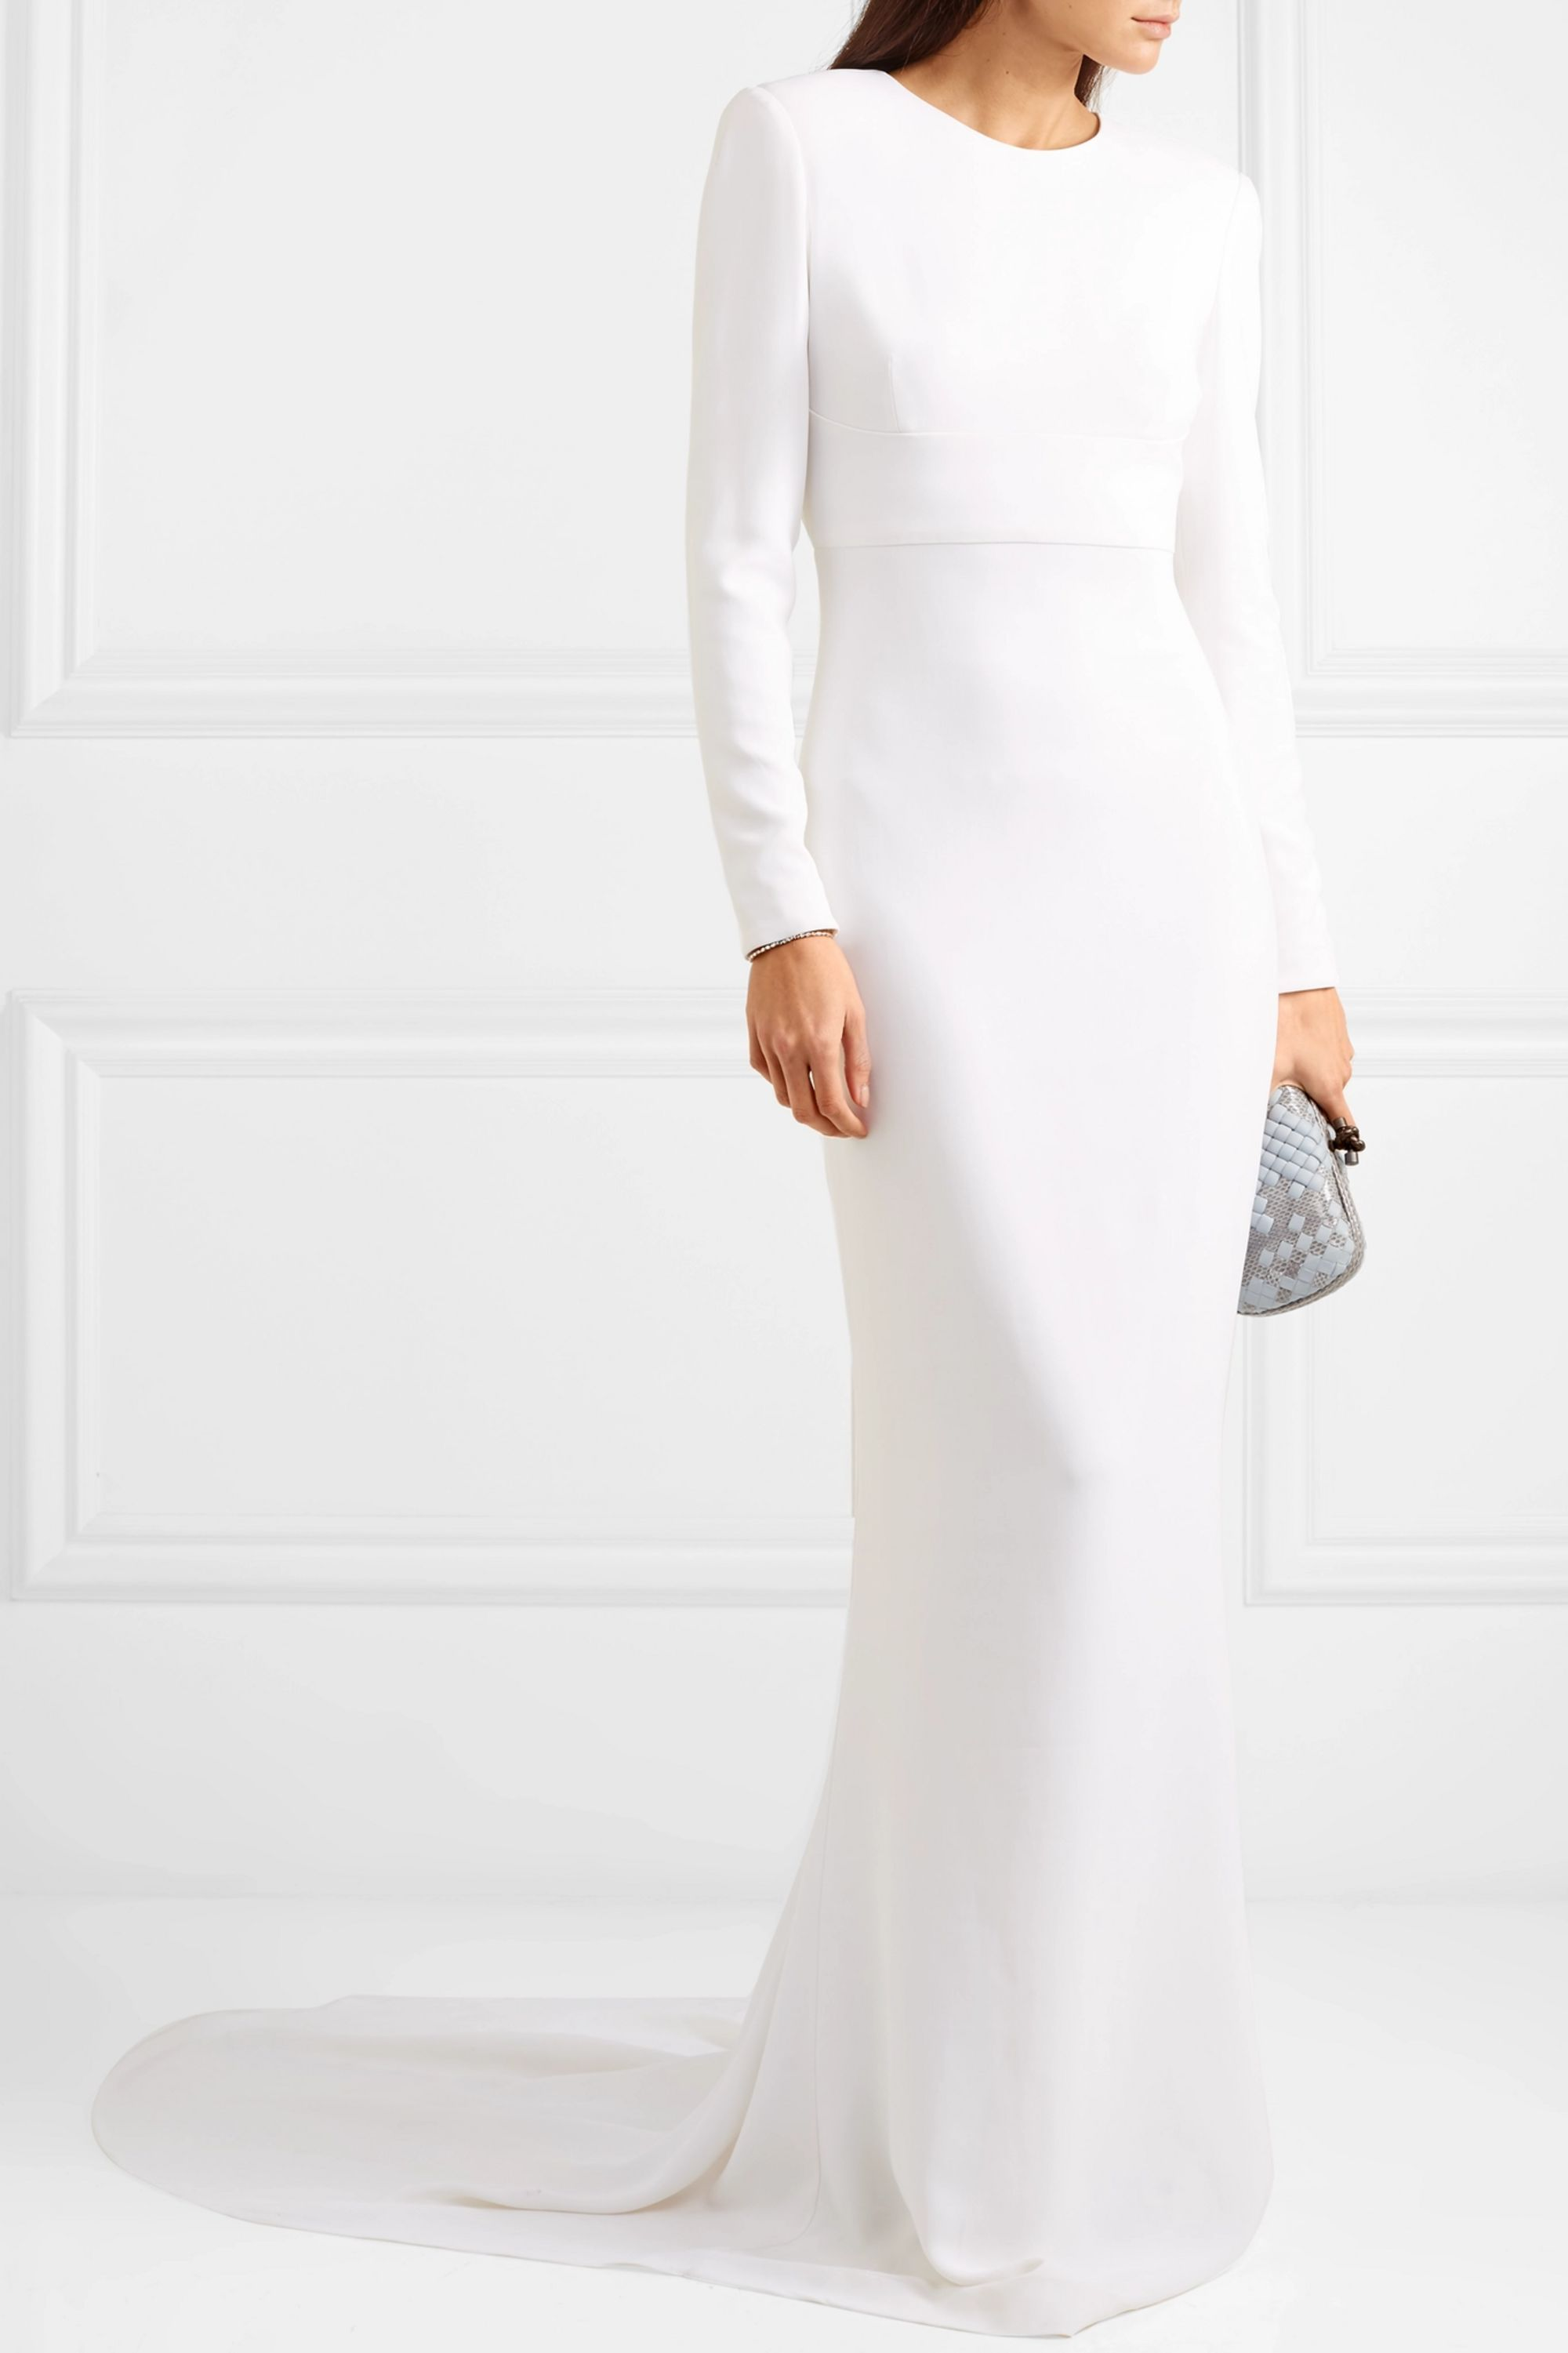 White Open Back Stretch Crepe Gown Stella Mccartney In 2021 Stella Mccartney Gowns Stretch Crepe [ 3001 x 2000 Pixel ]